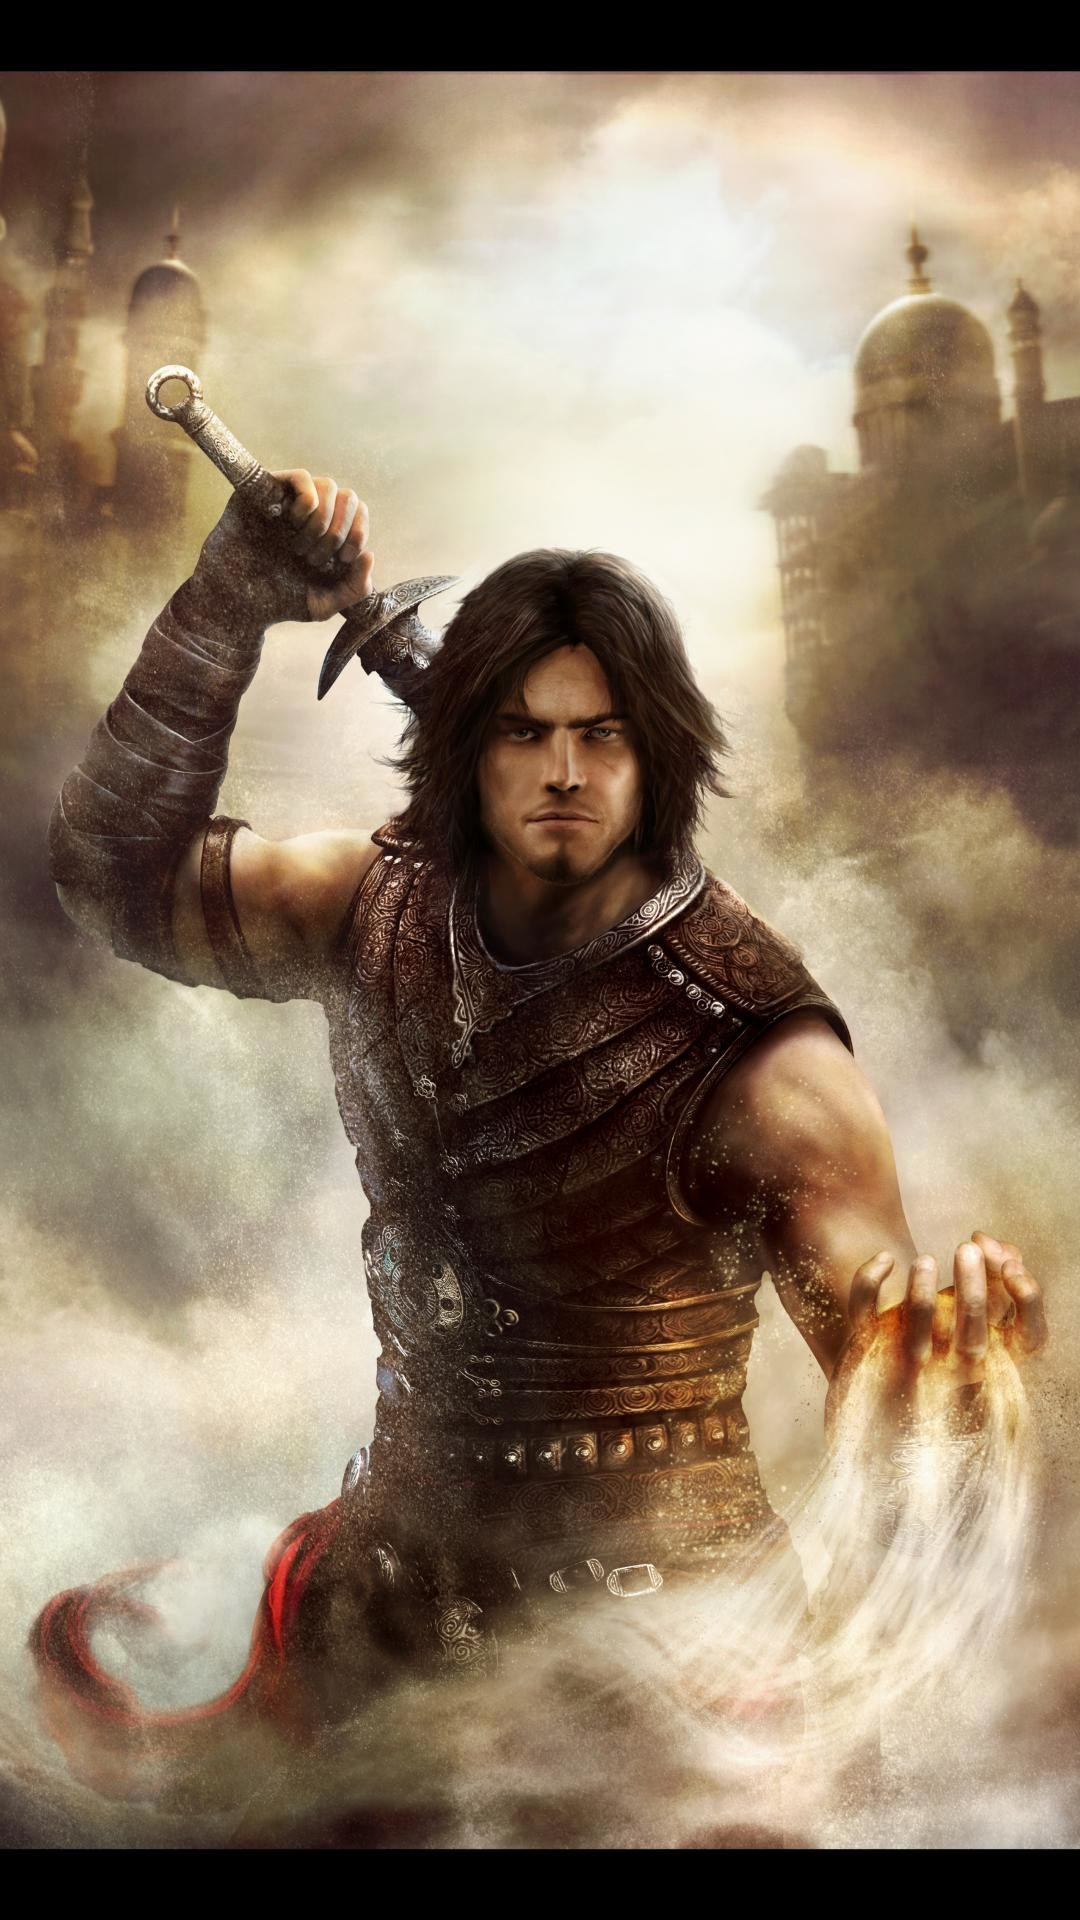 1080x1920 android wallpaper hd Prince of Persia wallpaper  mobile 4